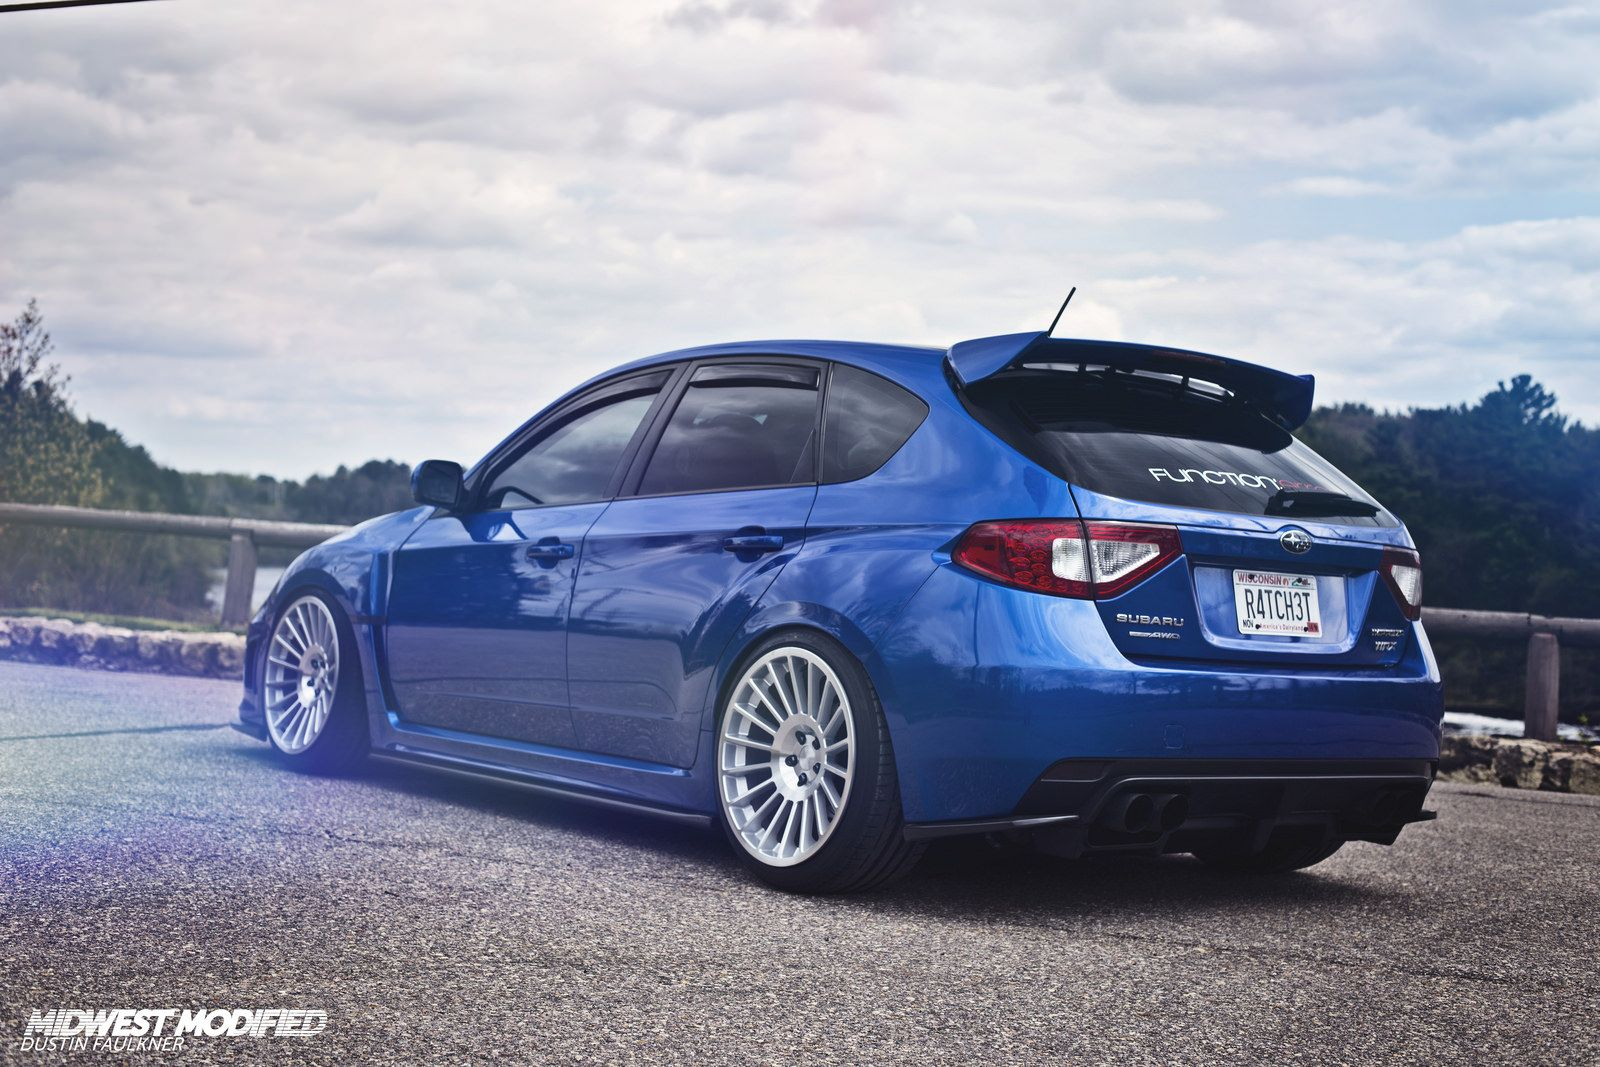 subaru impreza wrx sti tuning gr 1 lanos subaru. Black Bedroom Furniture Sets. Home Design Ideas